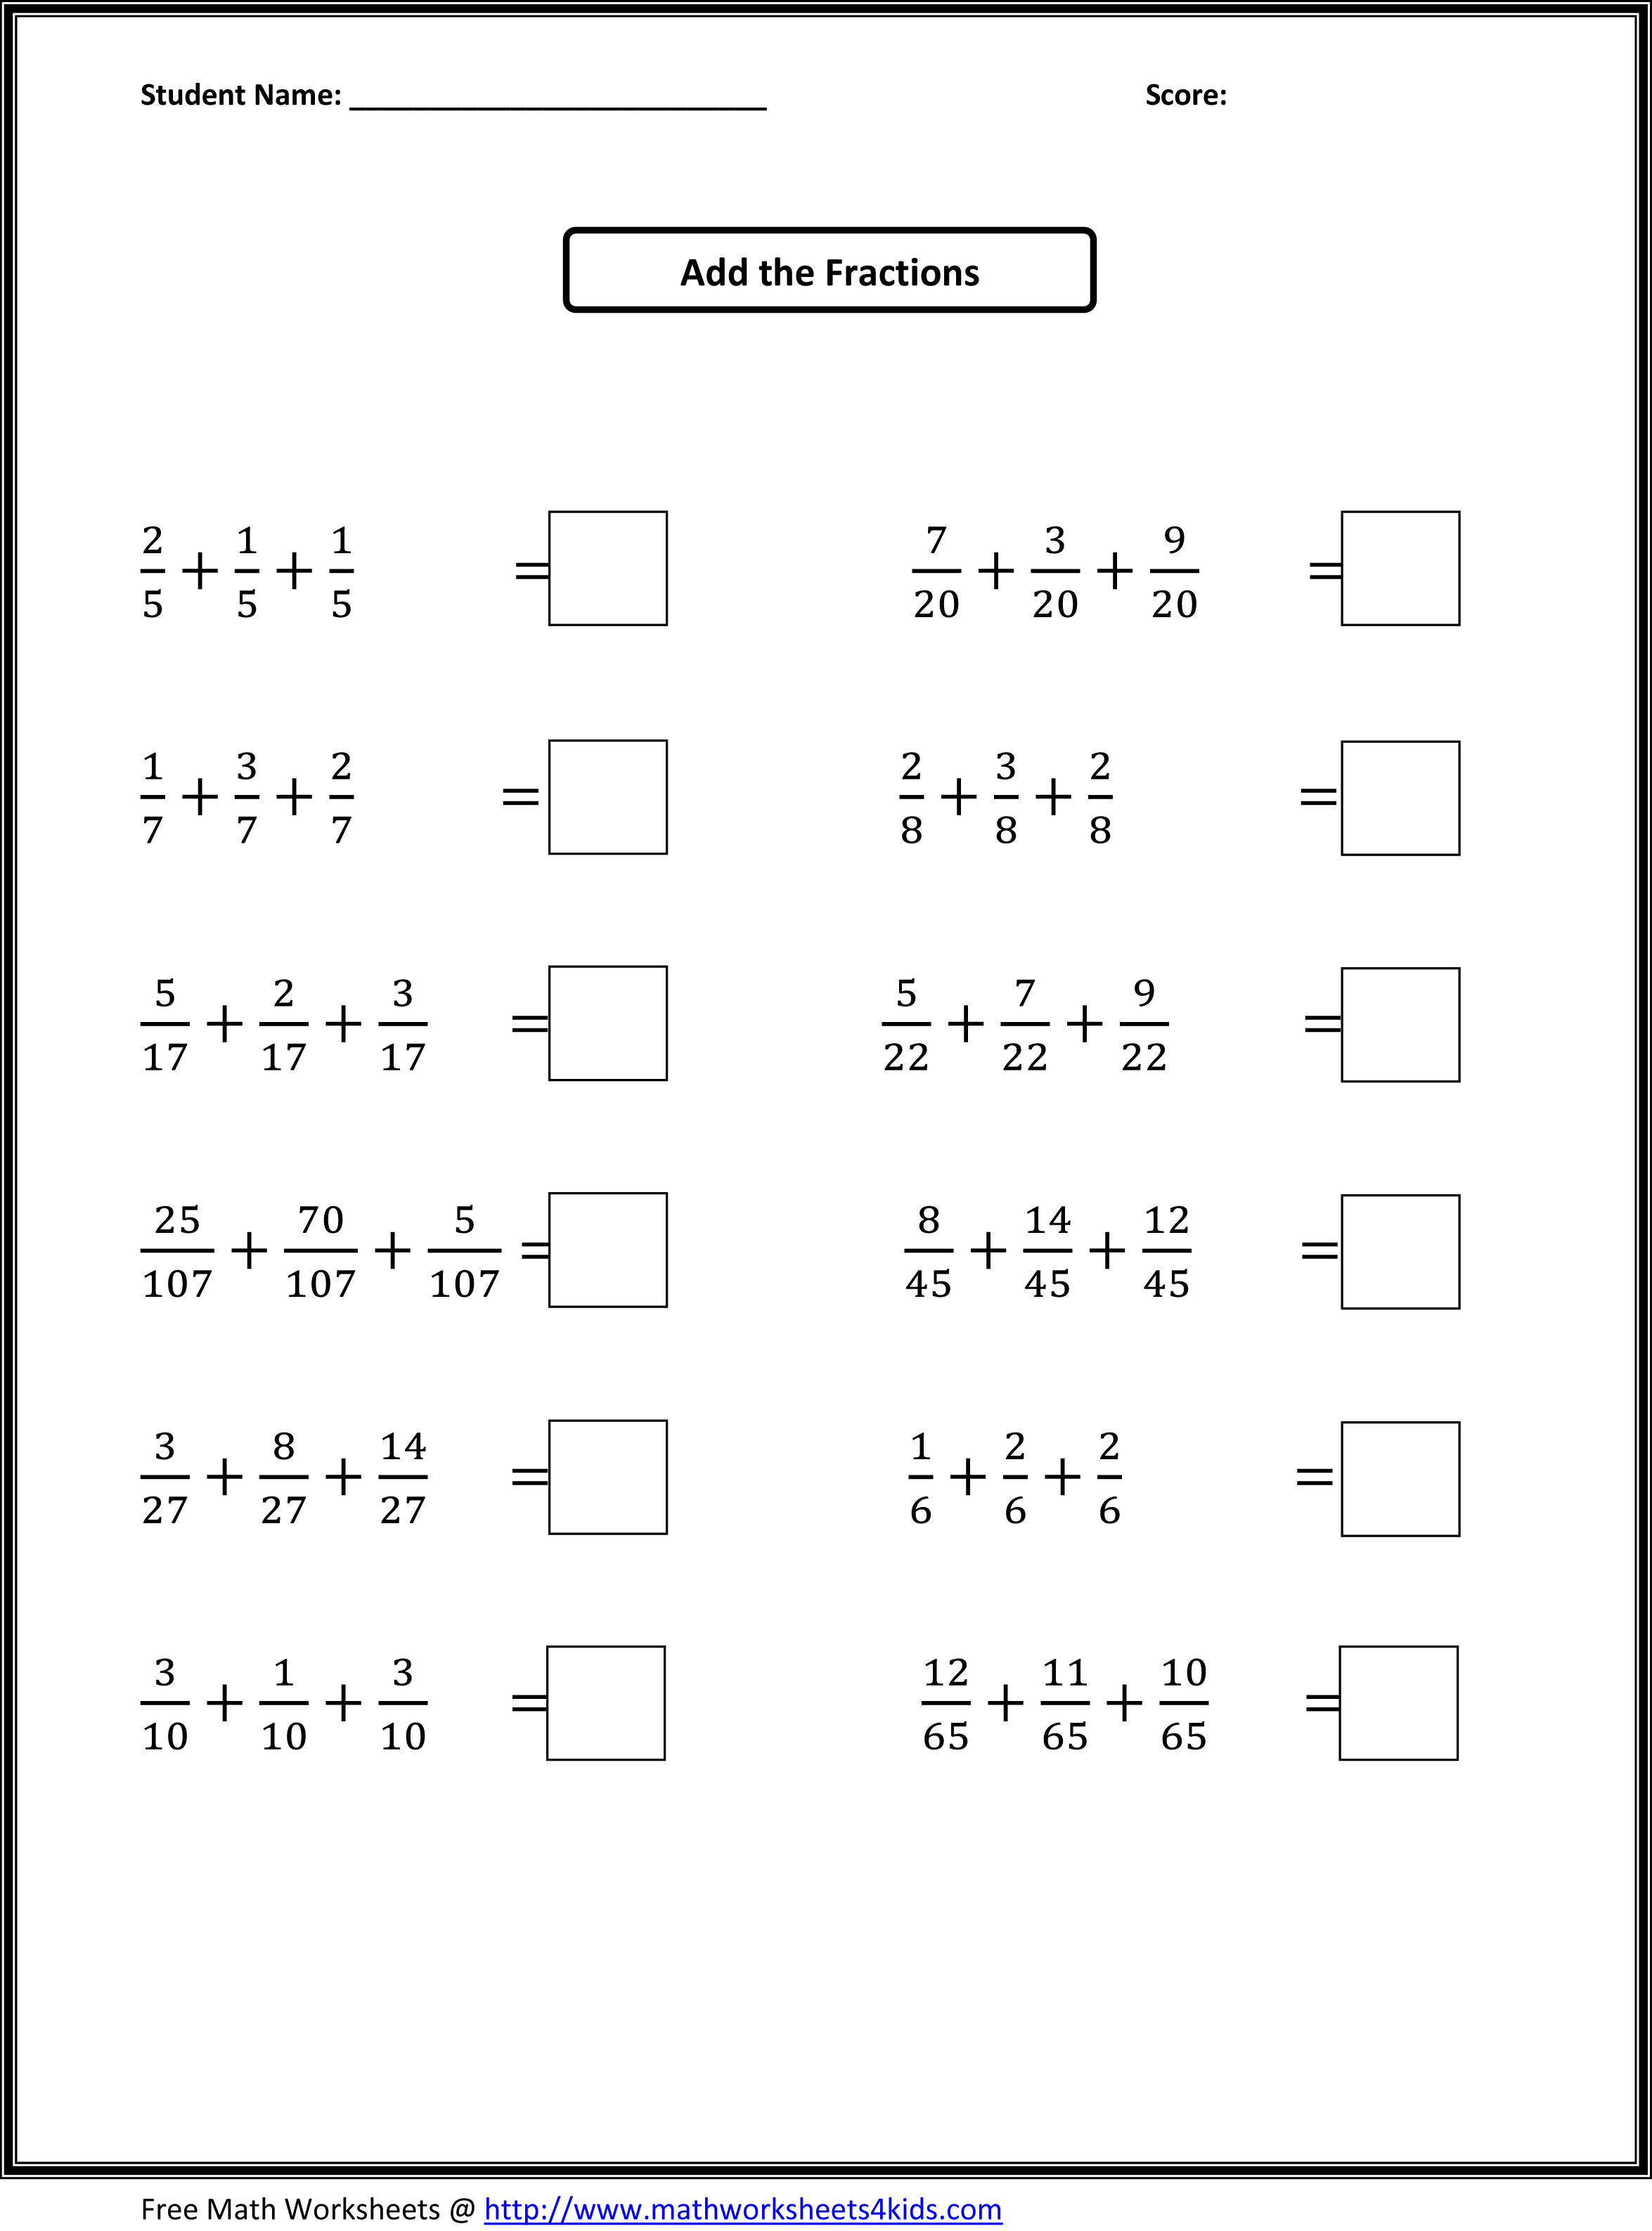 Worksheets 4th Grade Fraction Worksheets fraction worksheets 4th grade kids activities converting improper fractions mixed numbers writing printable free adding print